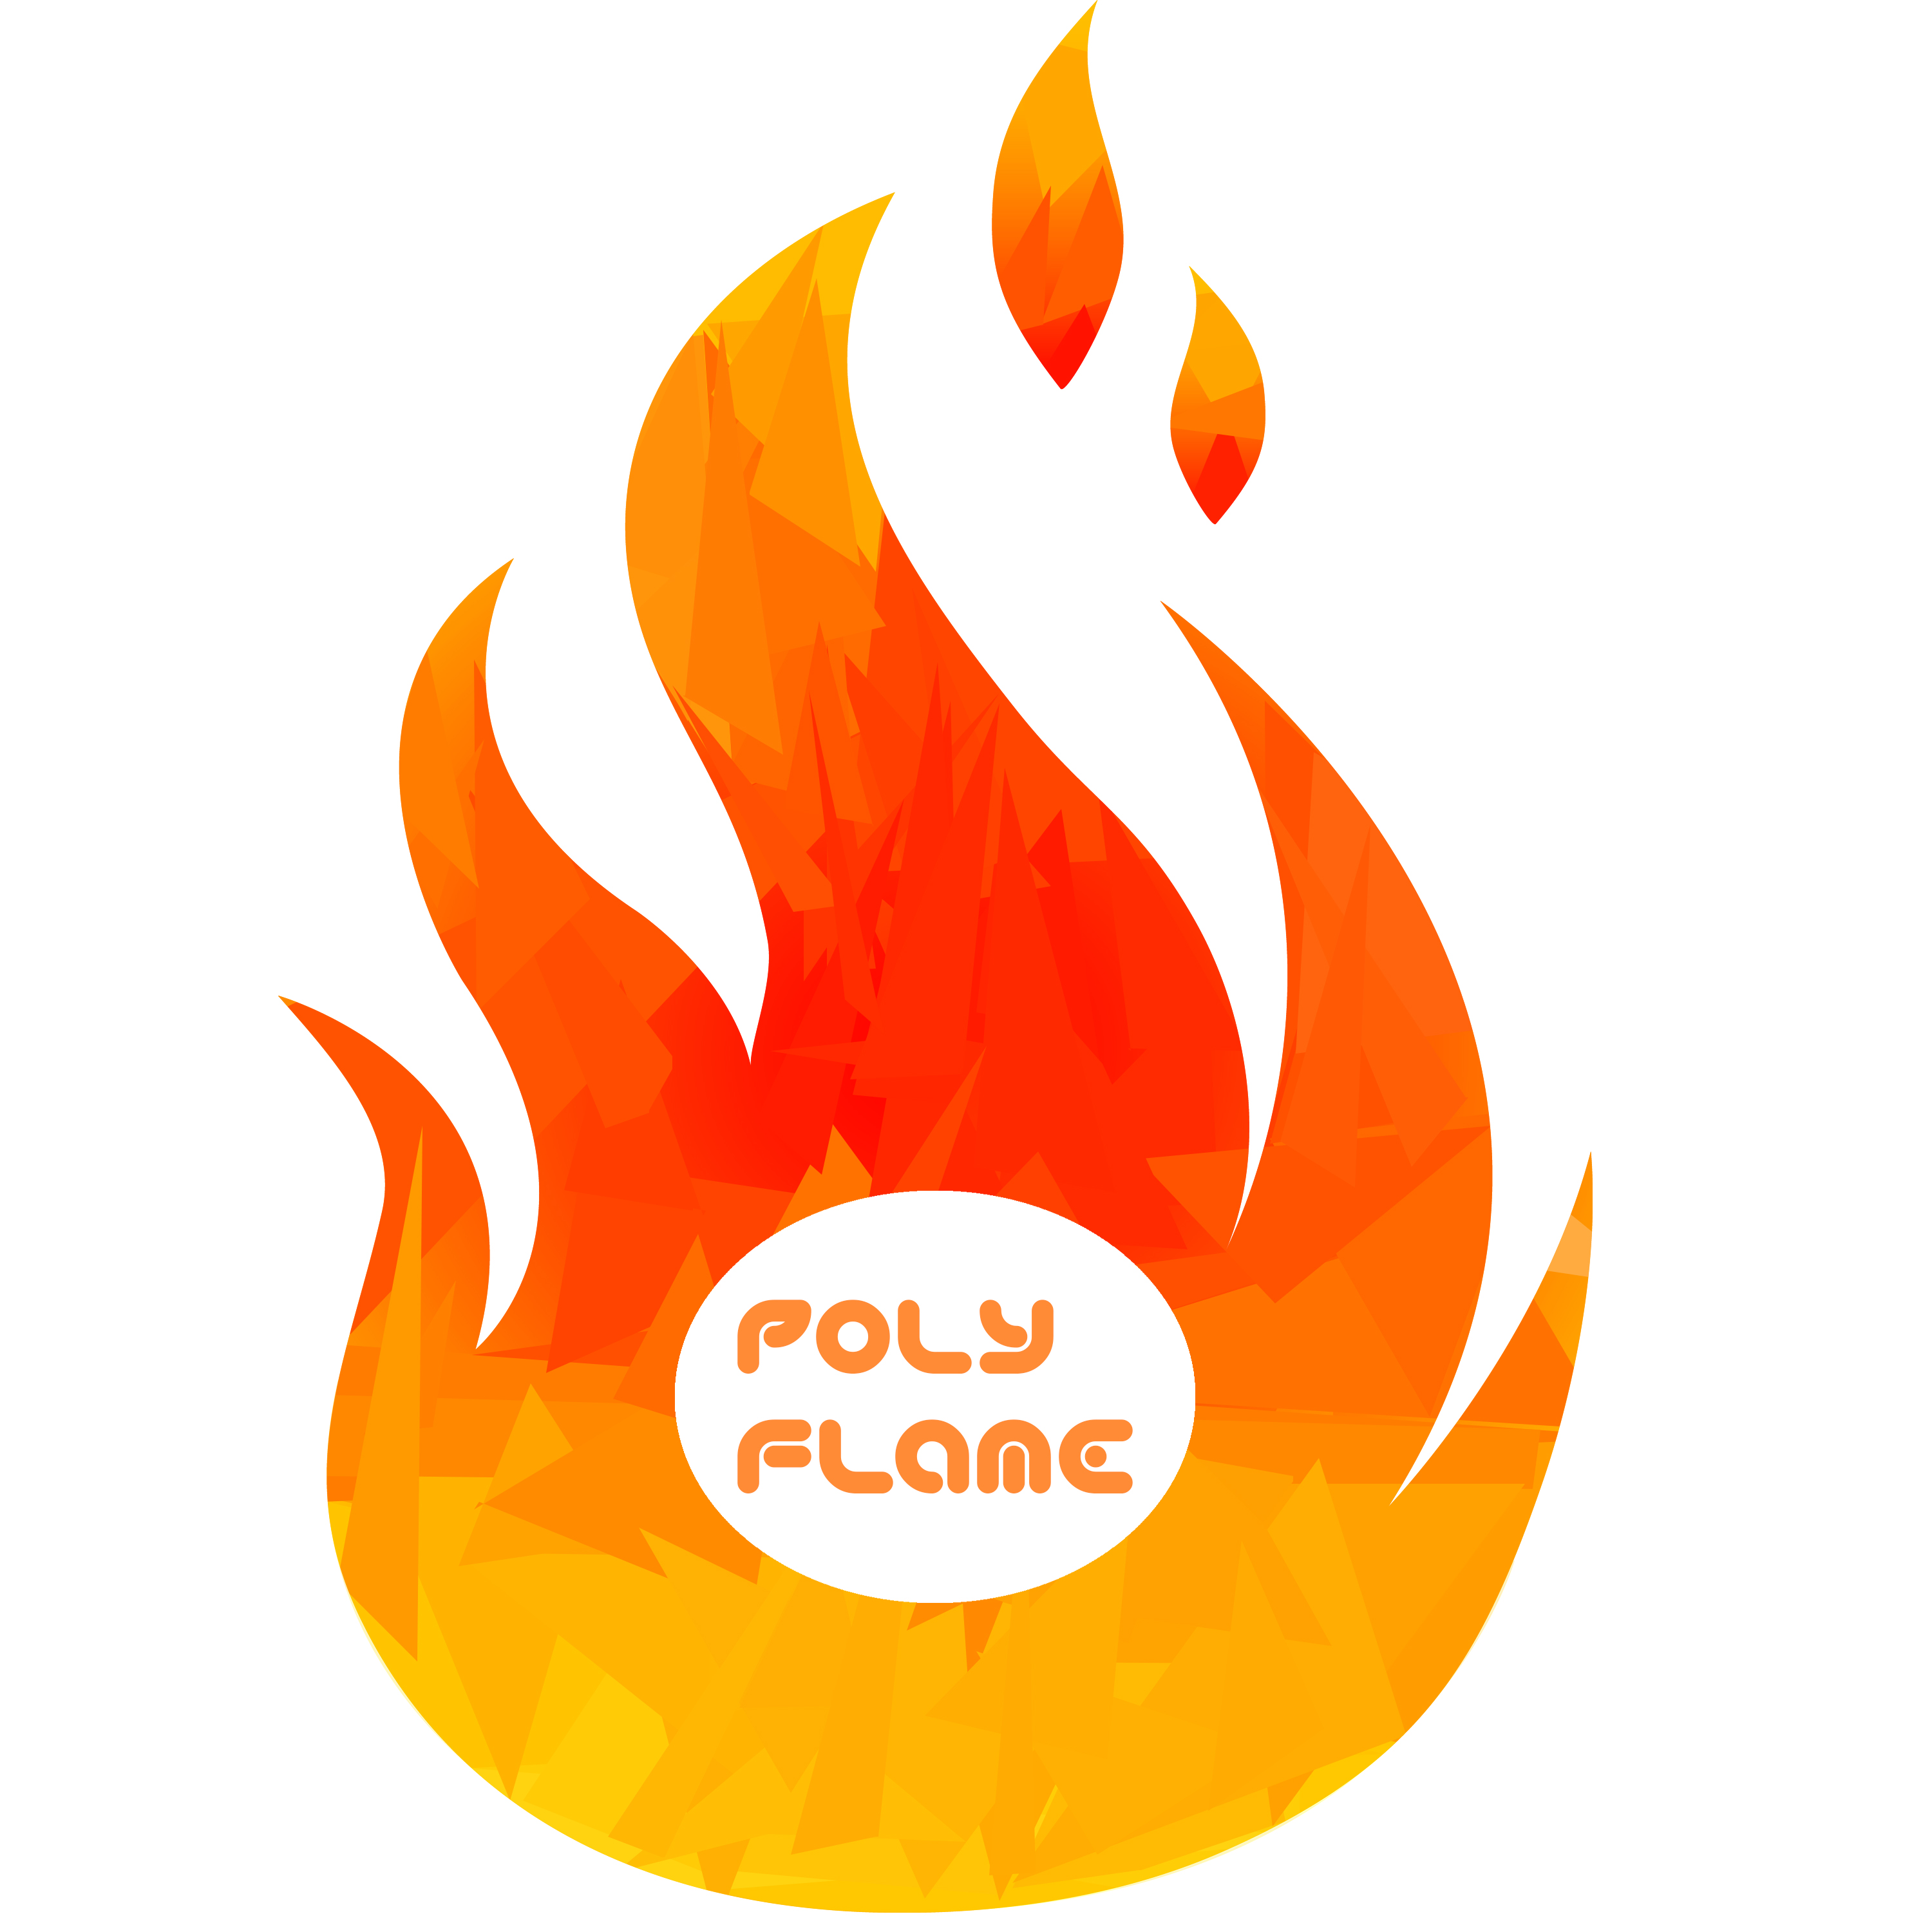 poly flame logo by poly flame on deviantart rh poly flame deviantart com frame logos flame logo split hoodie